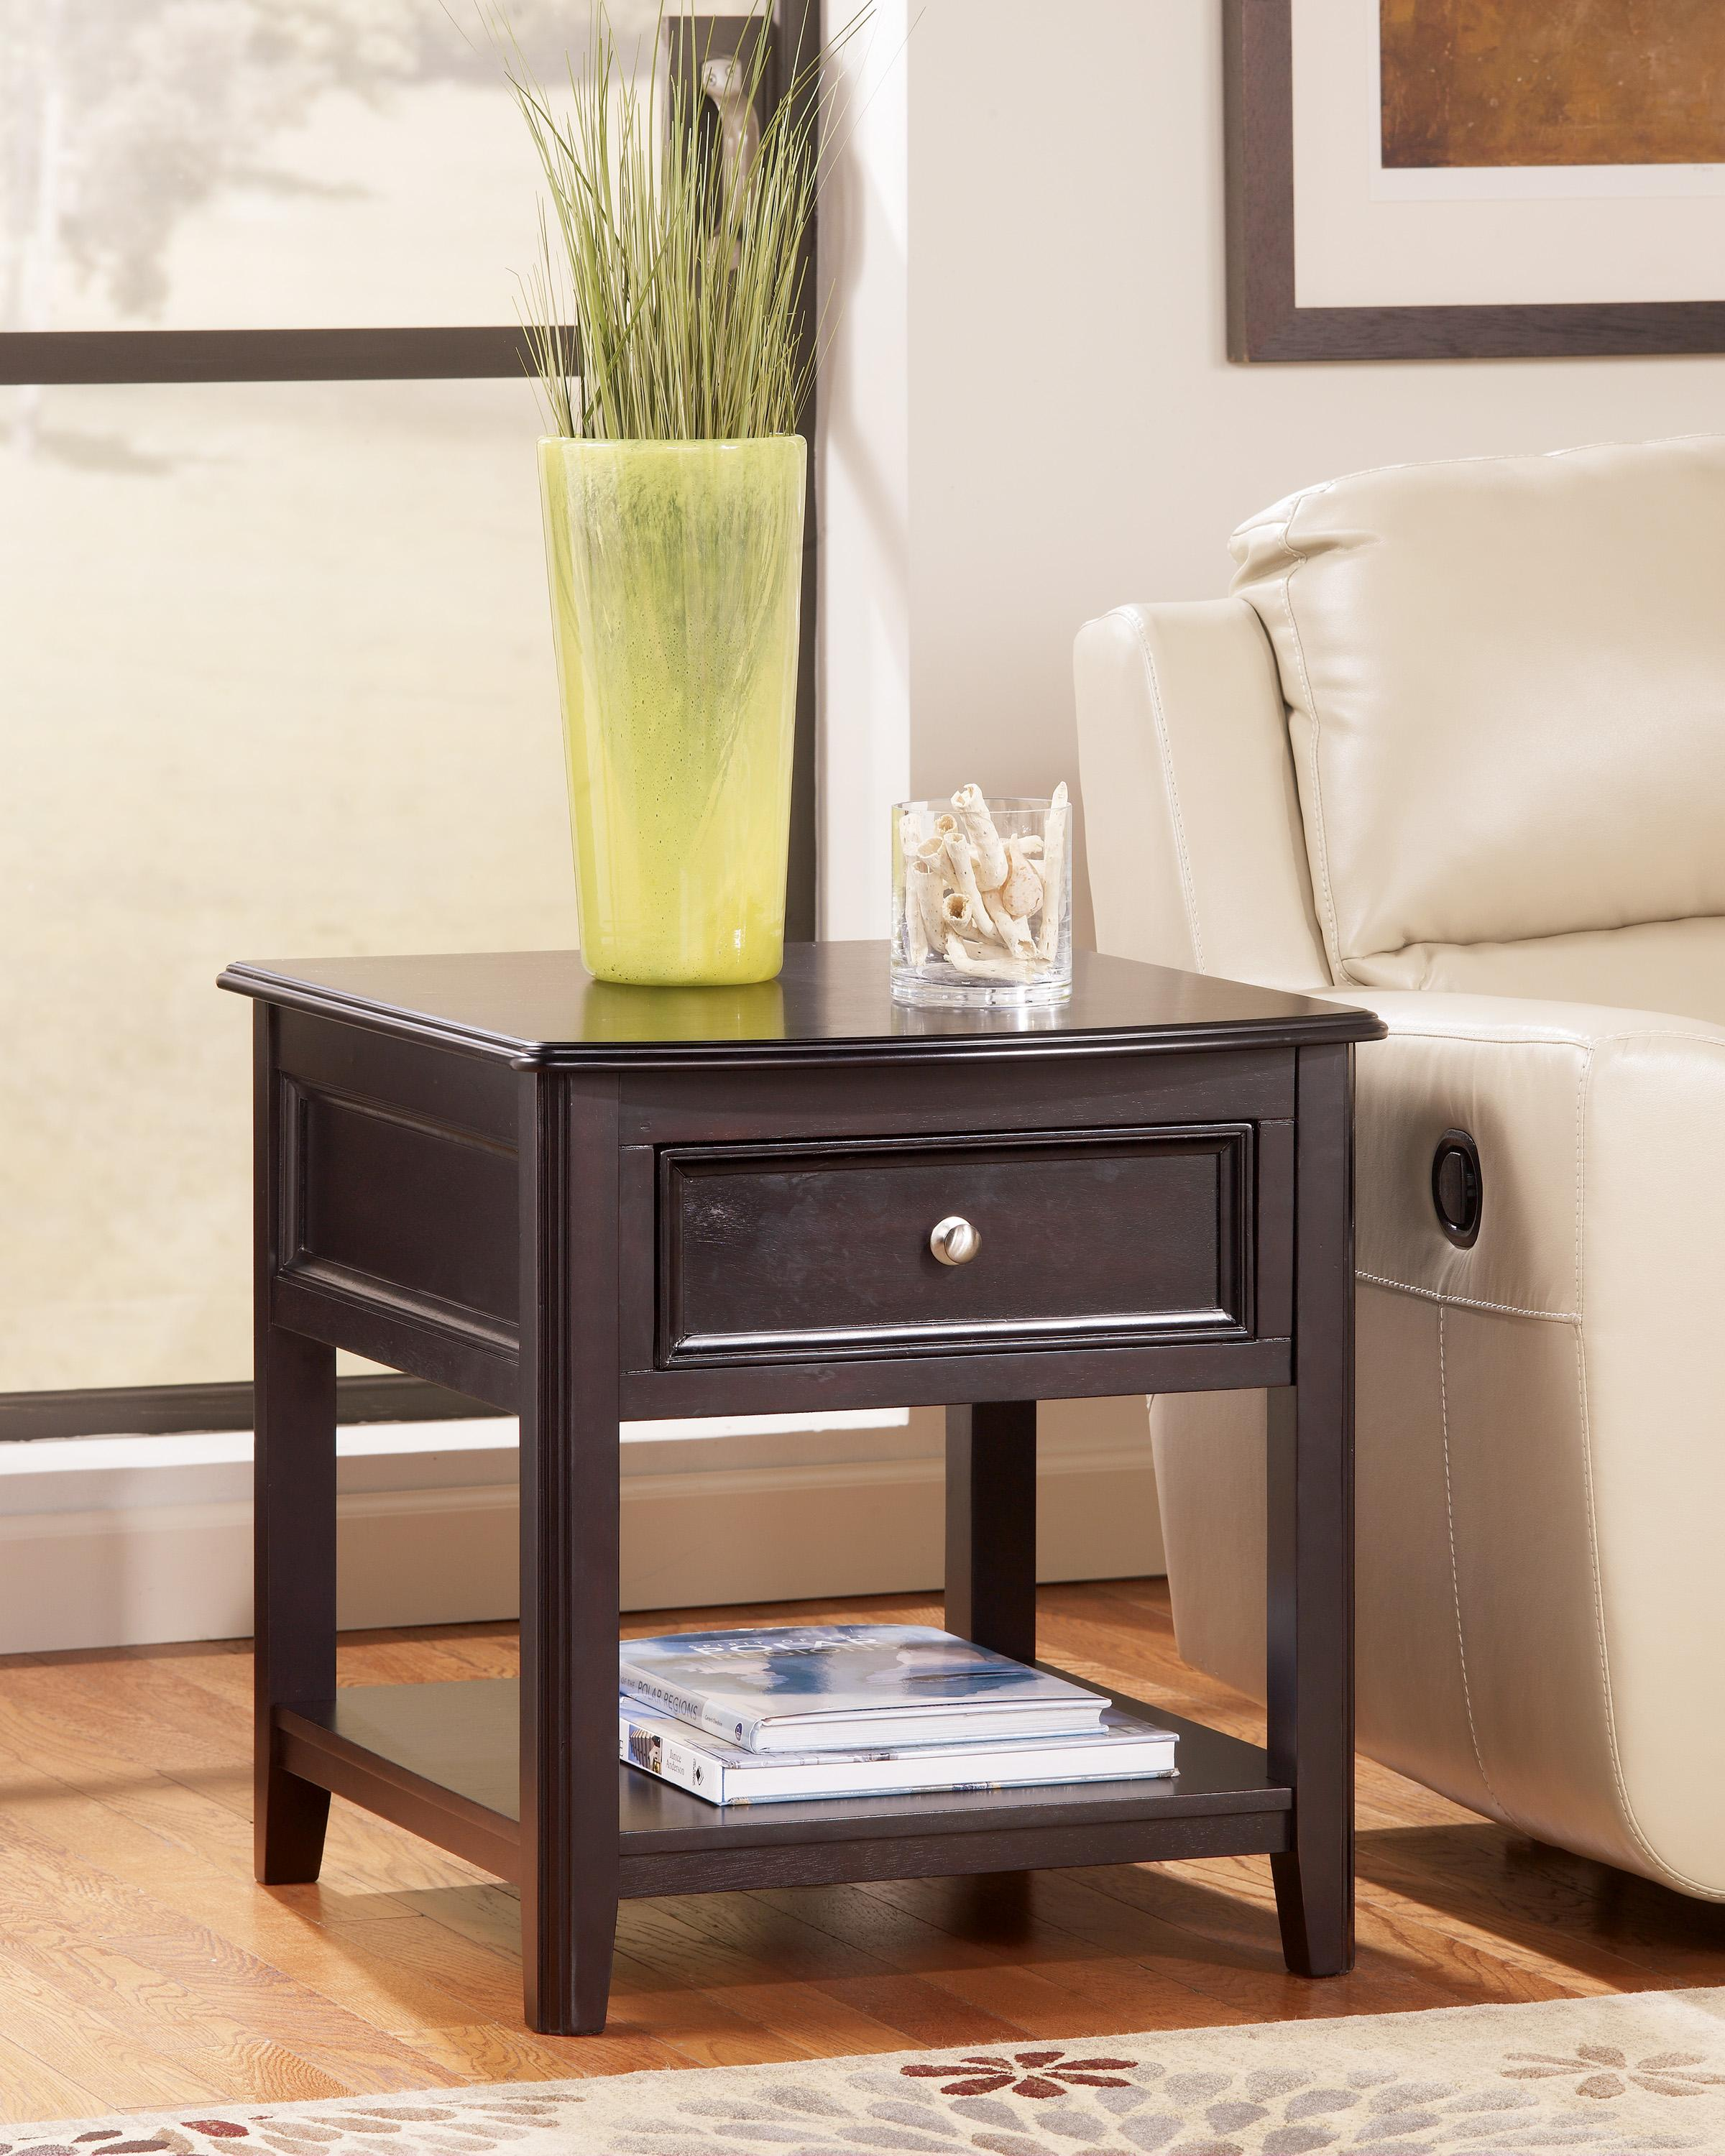 Rectangular End Table With Drawer And Bottom Shelf